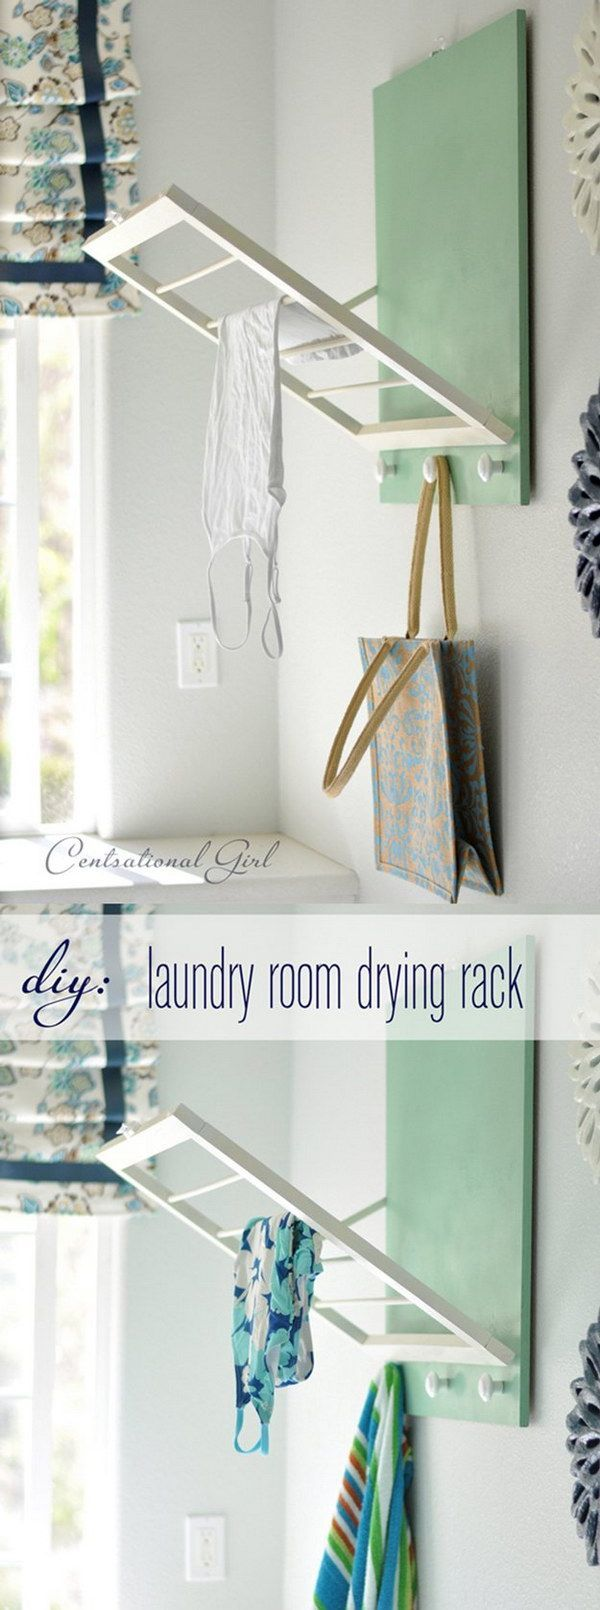 DIY Laundry Room Drying Rack. This DIY laundry room drying rack is perfect for a small laundry!